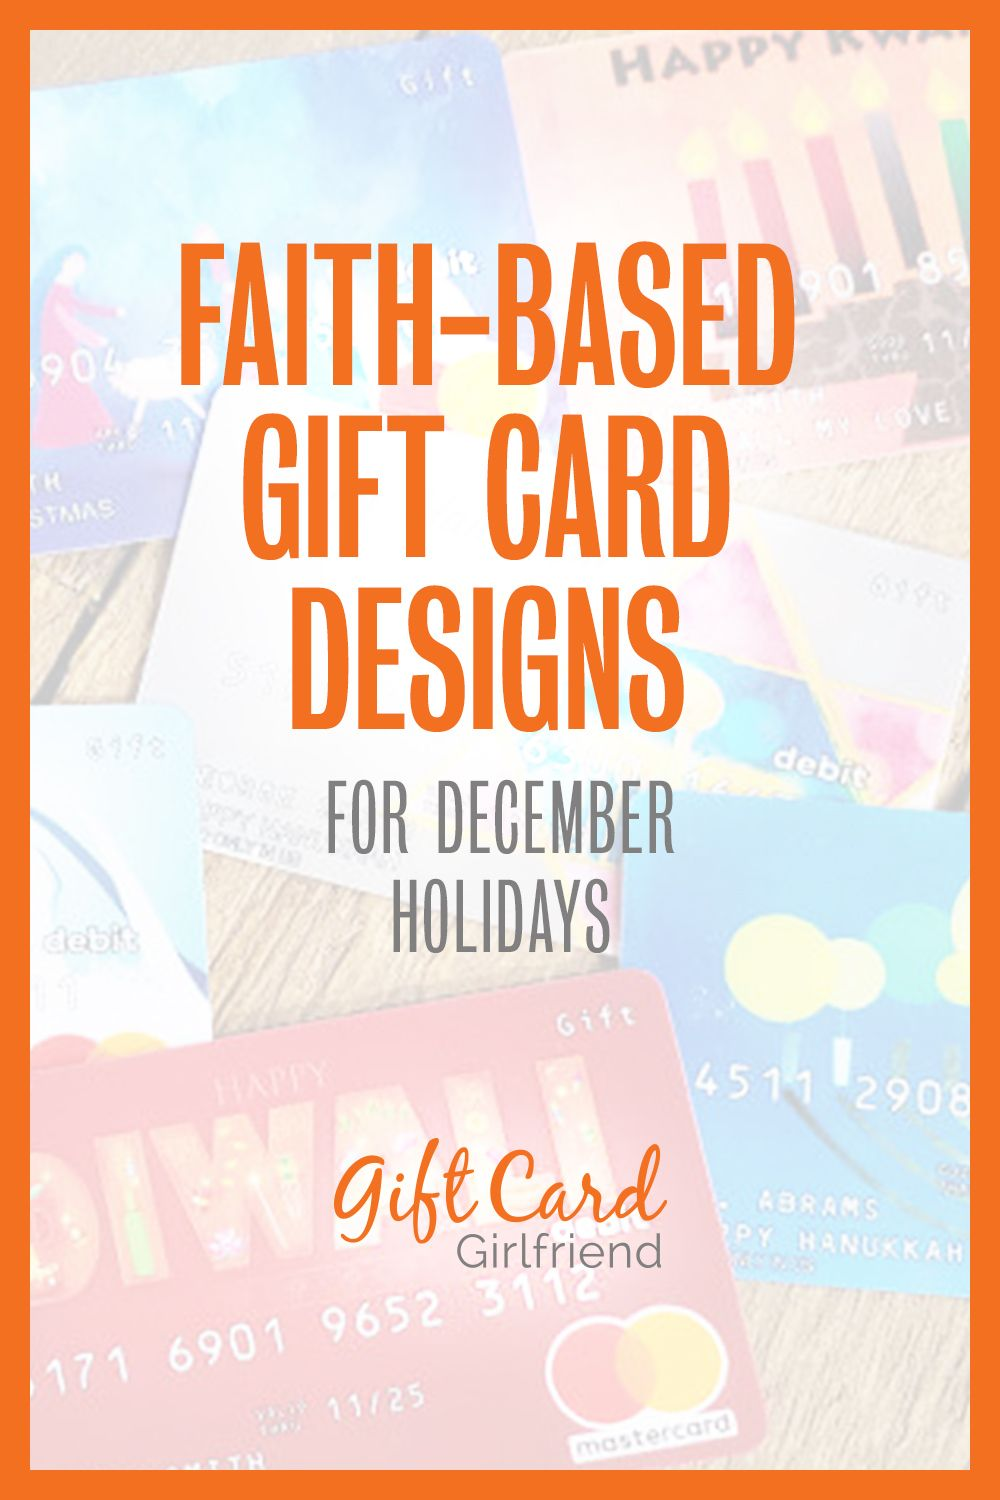 Christmas Hanukkah And Other Faith Based Gift Card Designs Giftcards Com Gift Card Design Gift Card Card Design